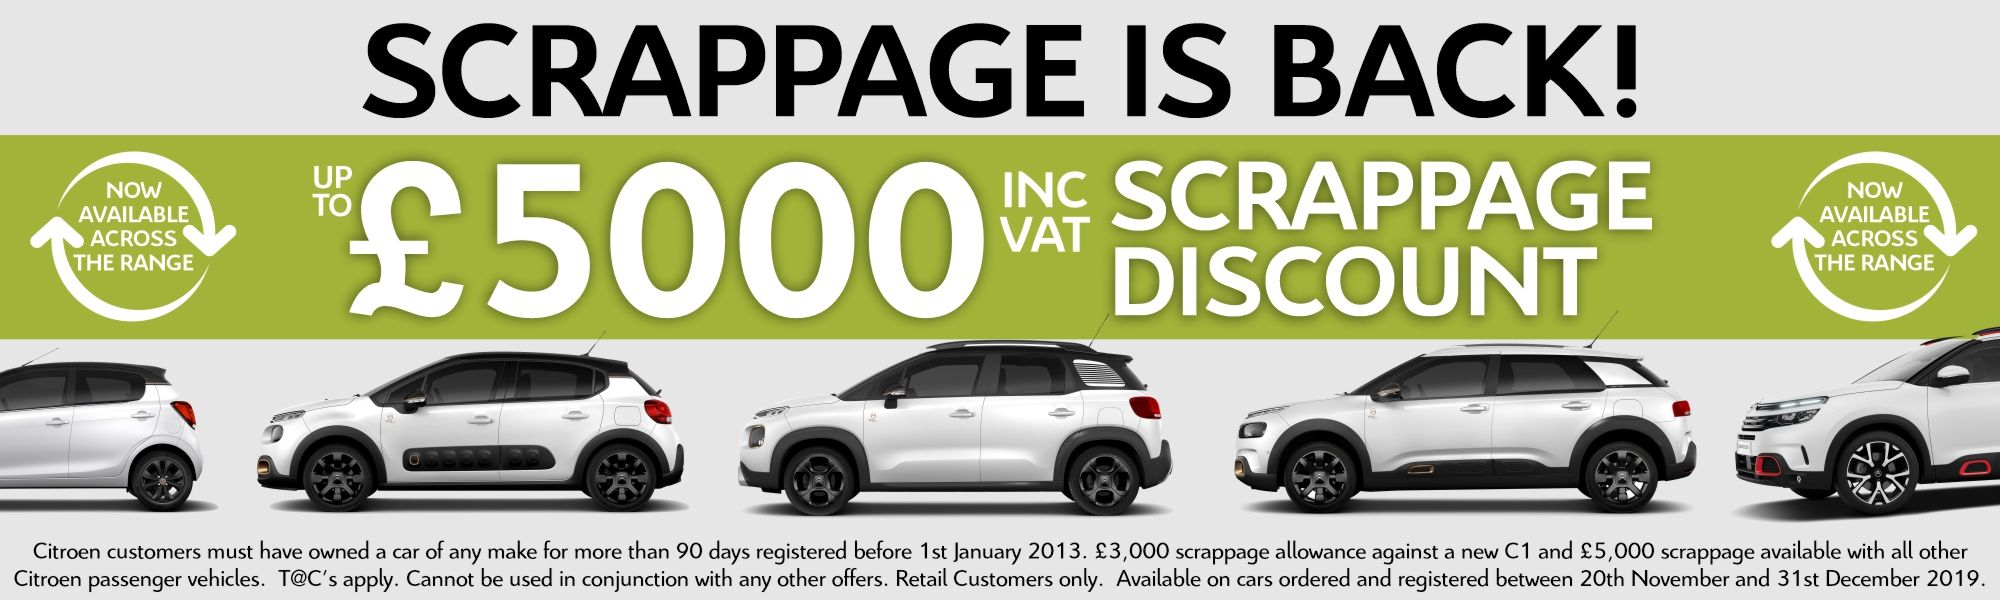 up to £5000 Scrappage is back!